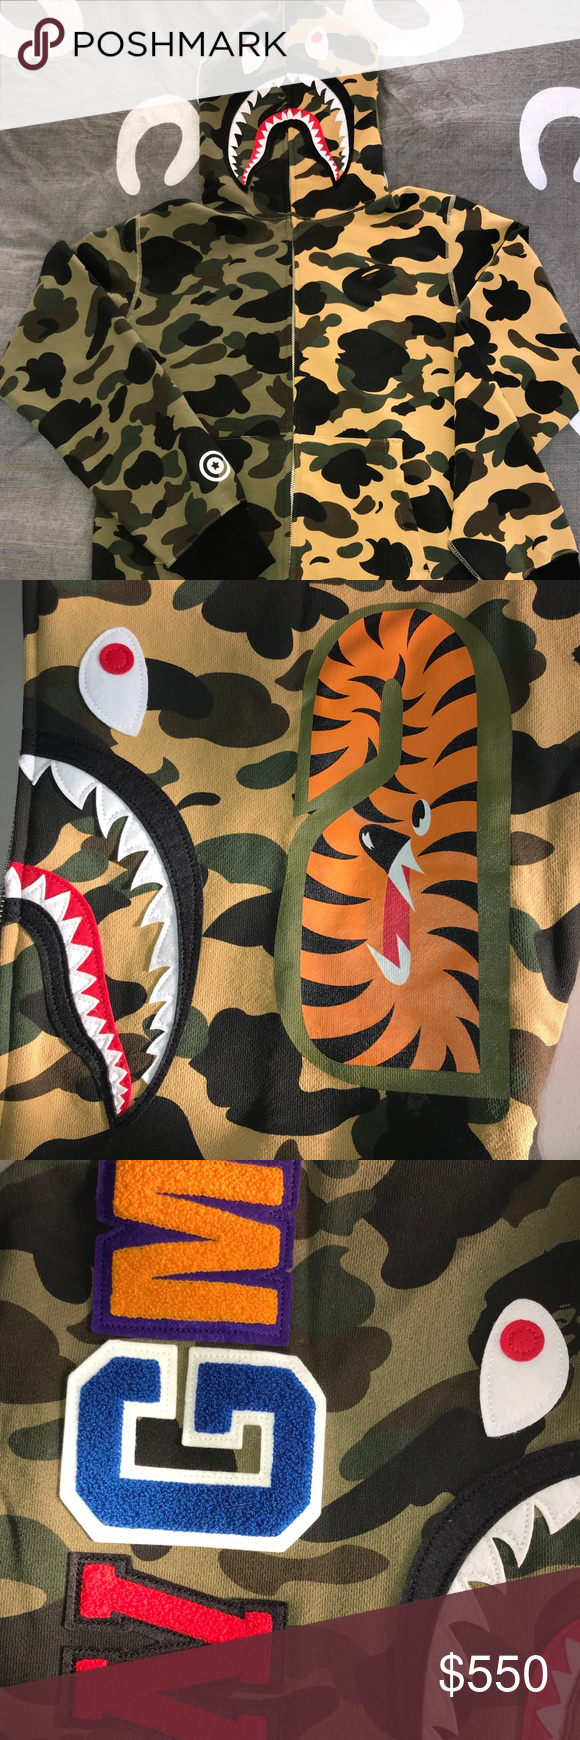 213e123a Bape Half Green and Yellow 1st Camo Shark Hoodie 100% authentic. Welcome to  the legit check. Brand new with tags. Come with an original dust bag and  the ...